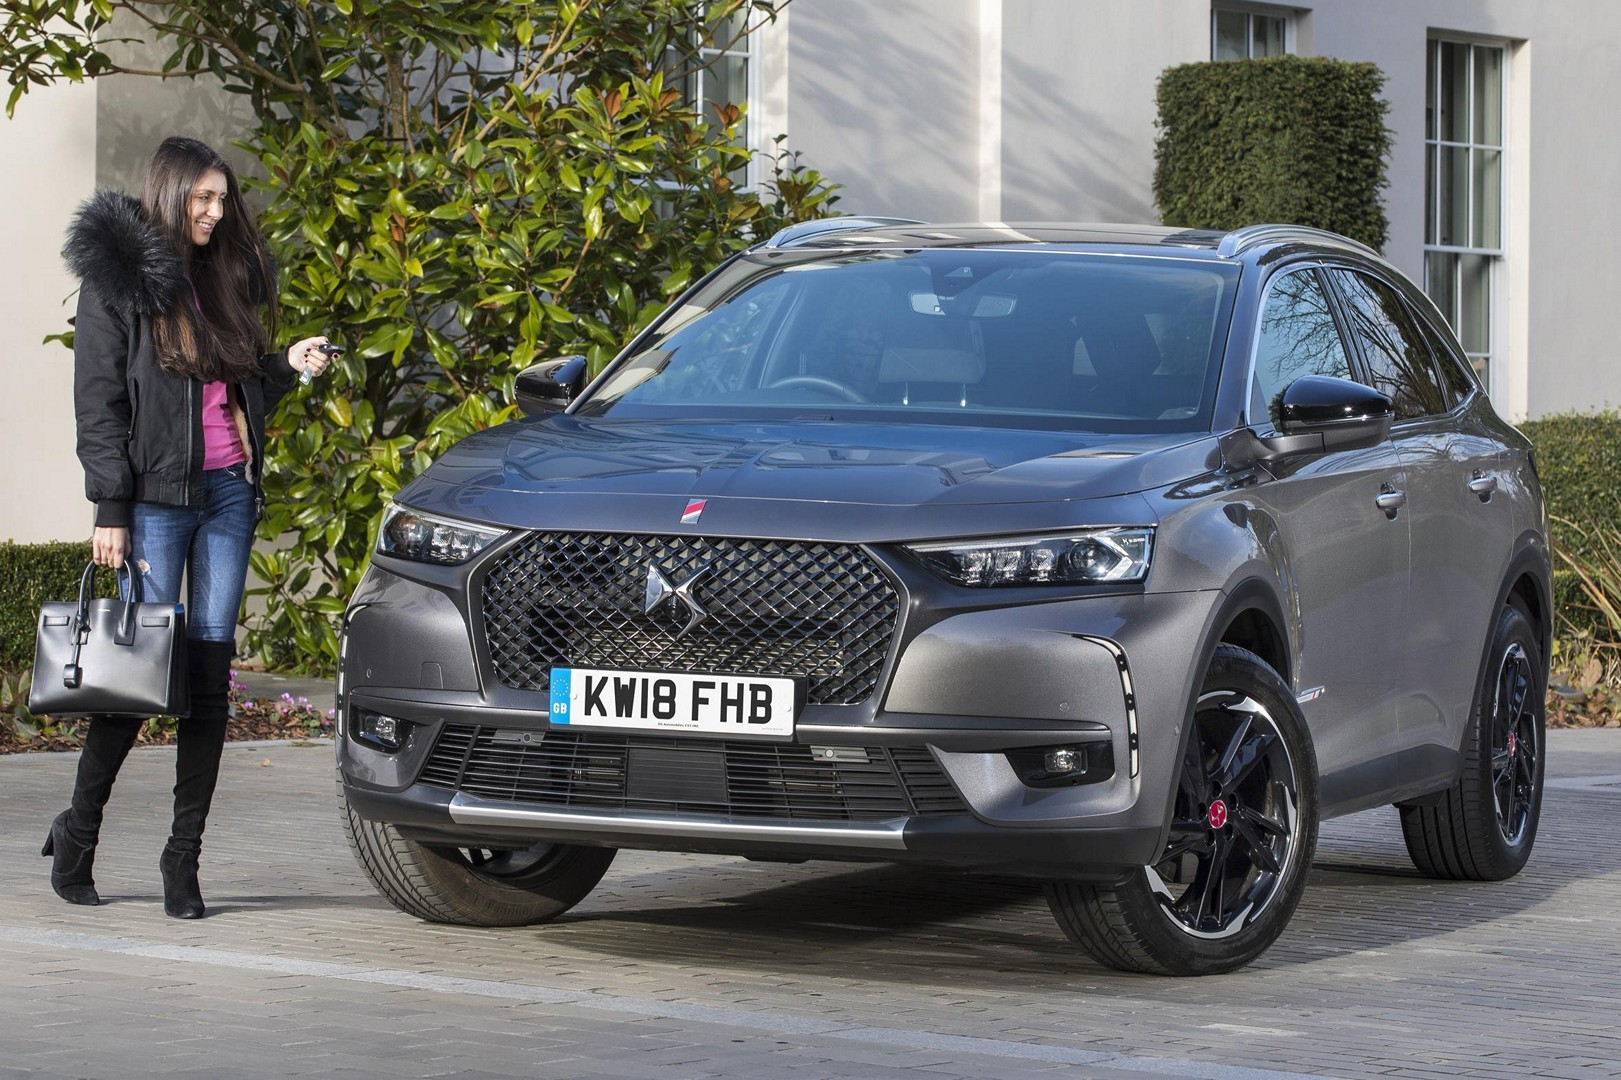 DS7 Crossback Gets 225 HP 1.6L Turbo Engine in Britain  autoevolution